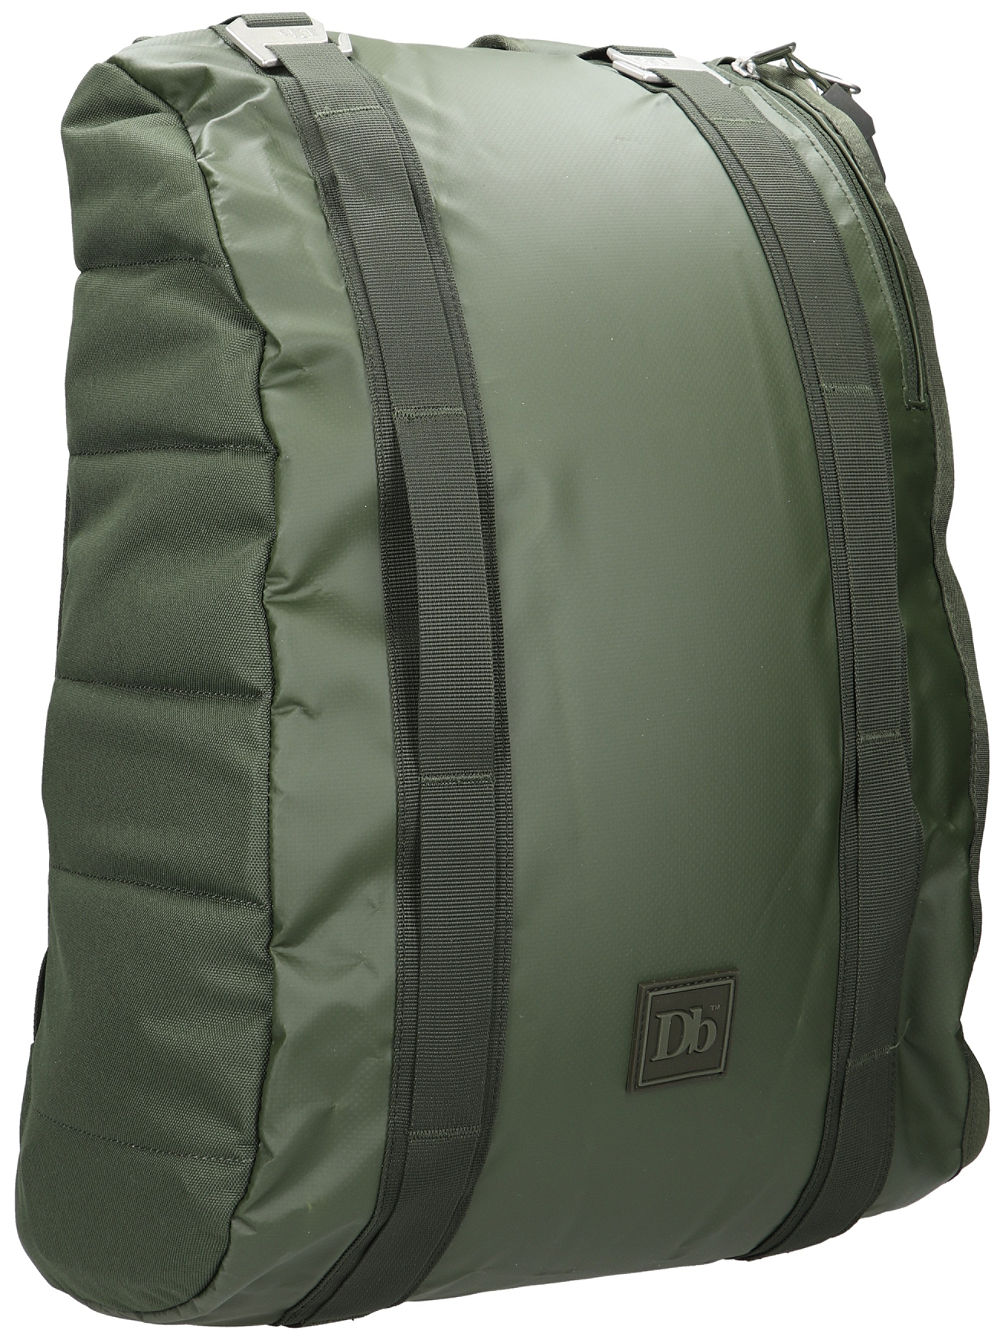 The Base 15L Rucksack